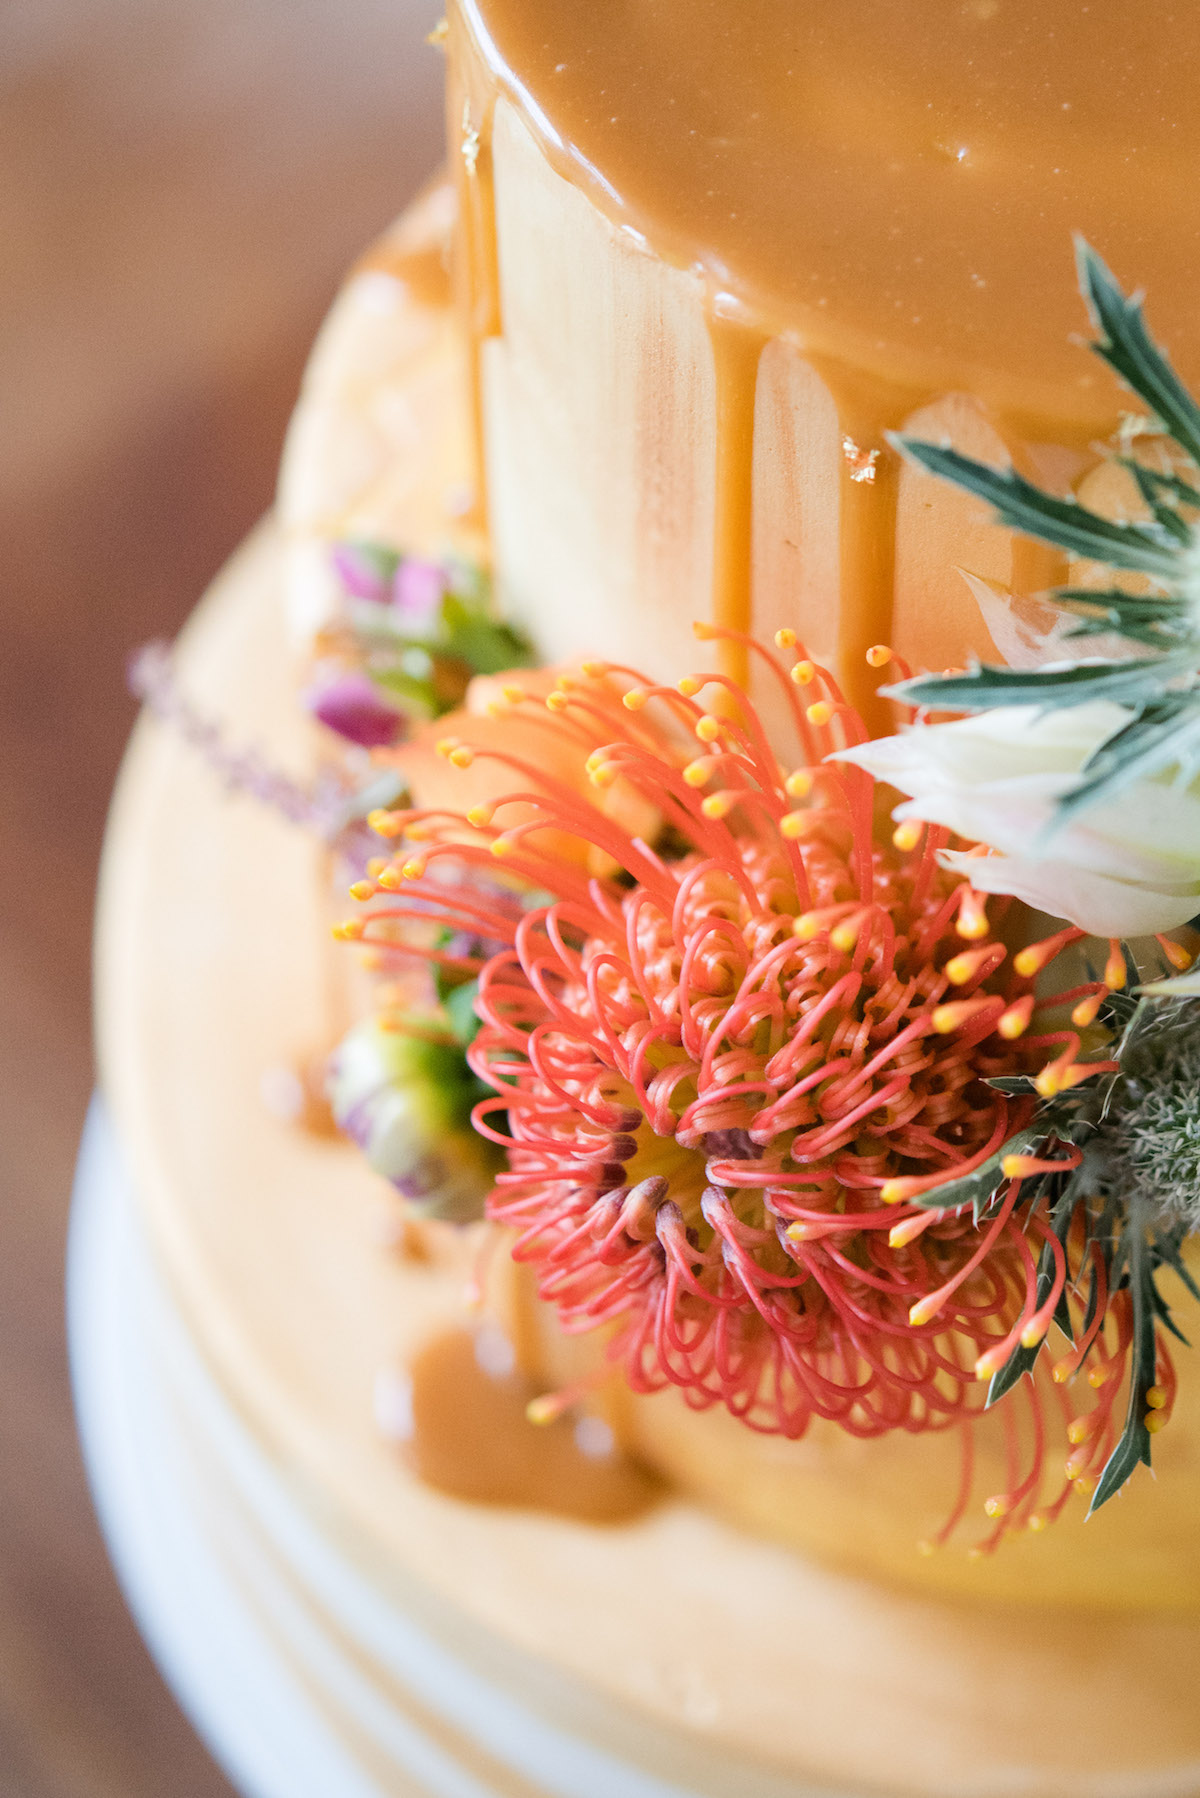 GOLD DRIP CAKE HONEY AND FLOWERS NORFOLK